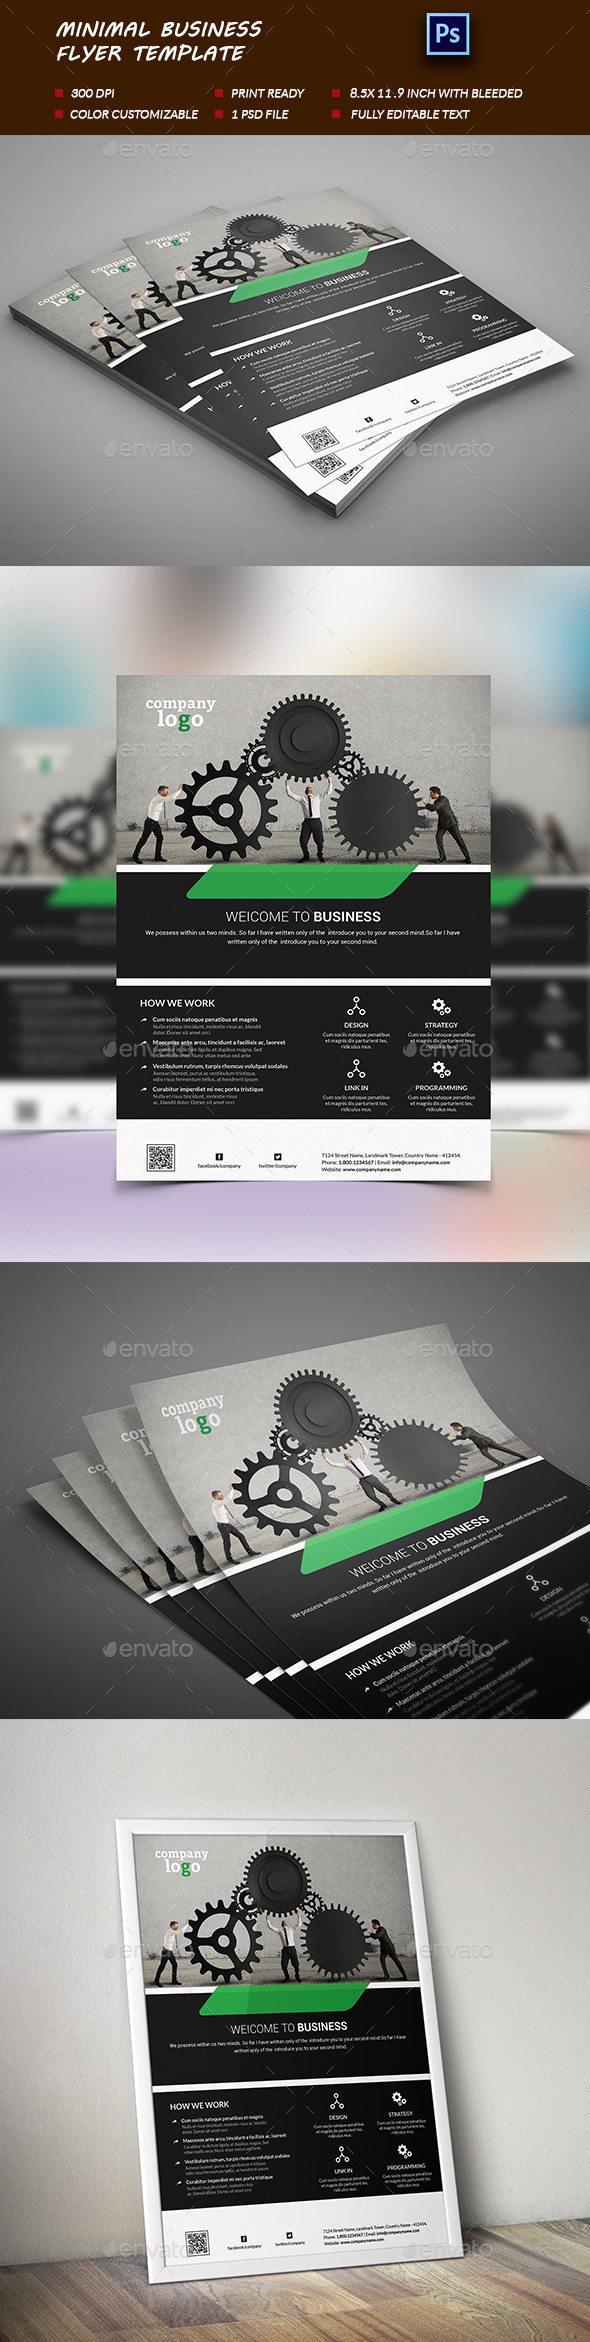 Minimal Business Flyer Template-V0l:01 - Corporate Flyers